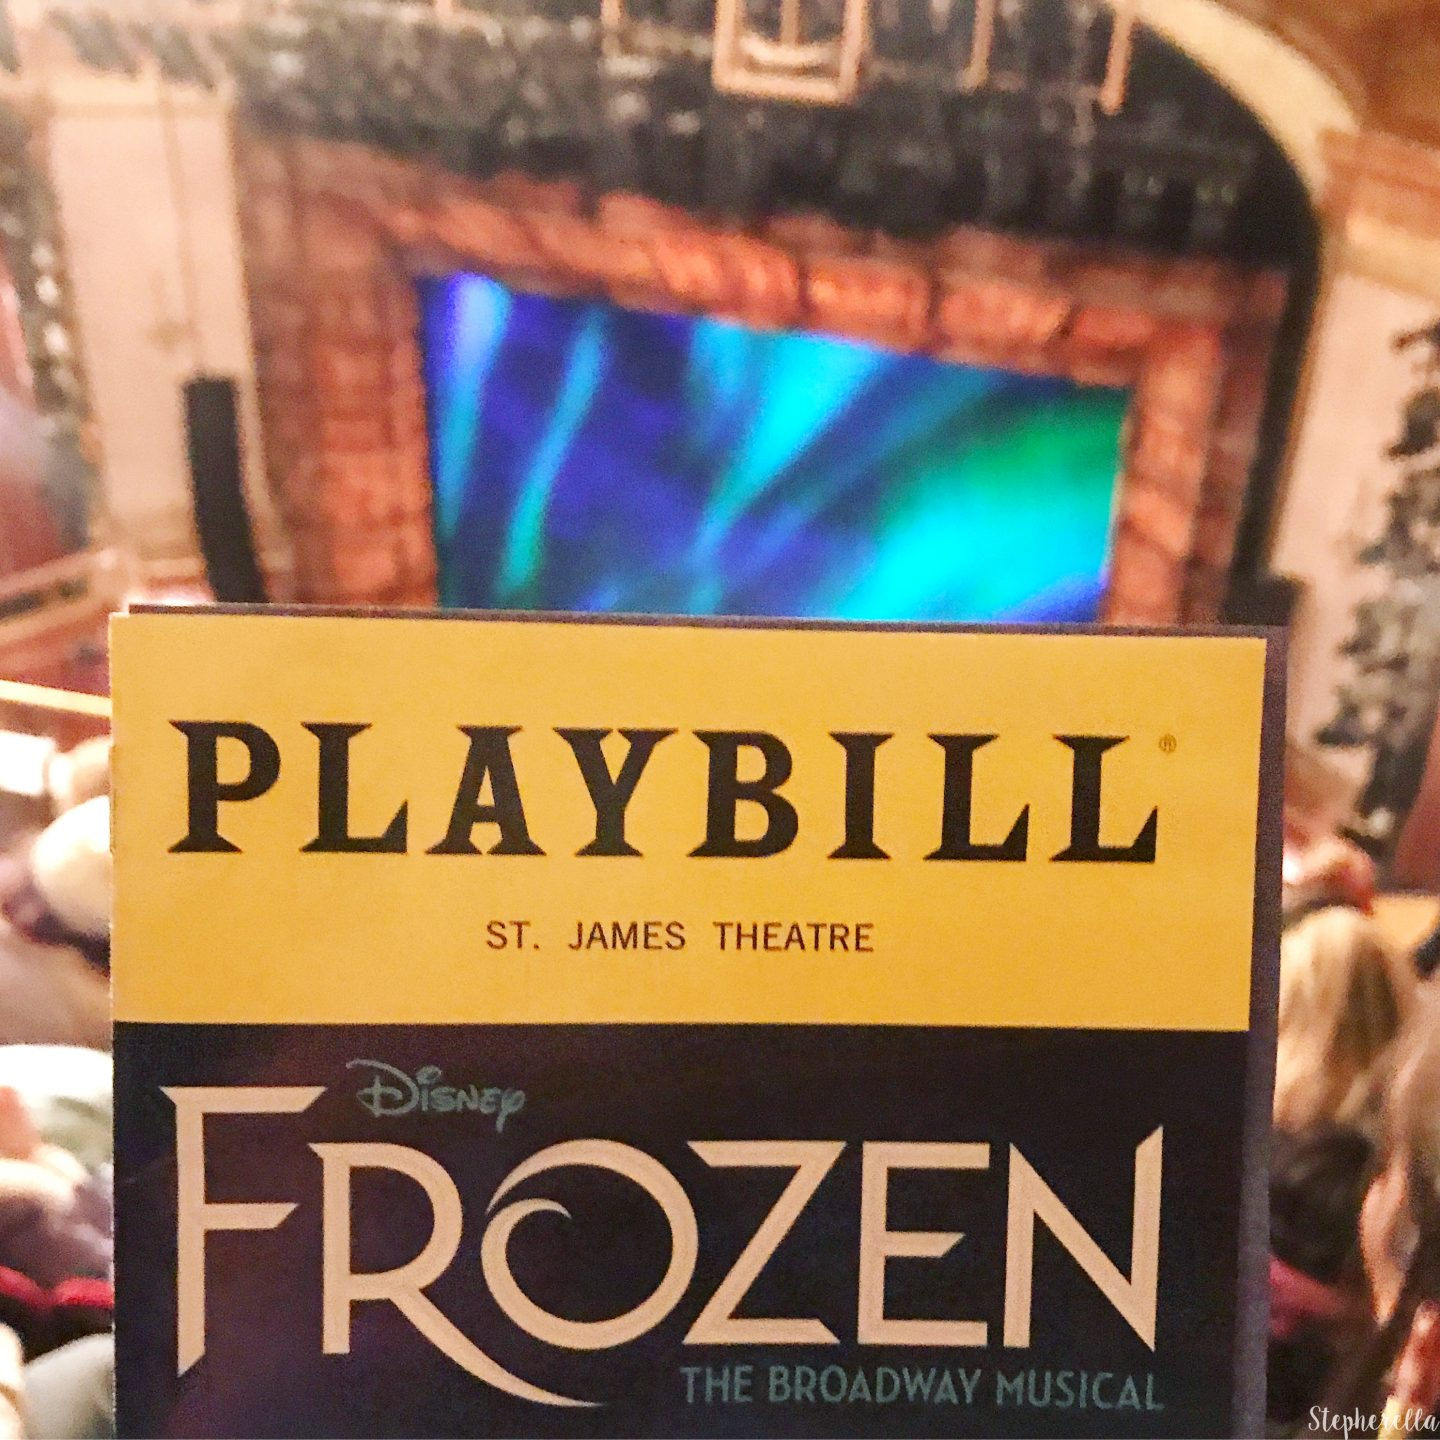 For The First Time in Forever Disney's Frozen Debuts on Broadway